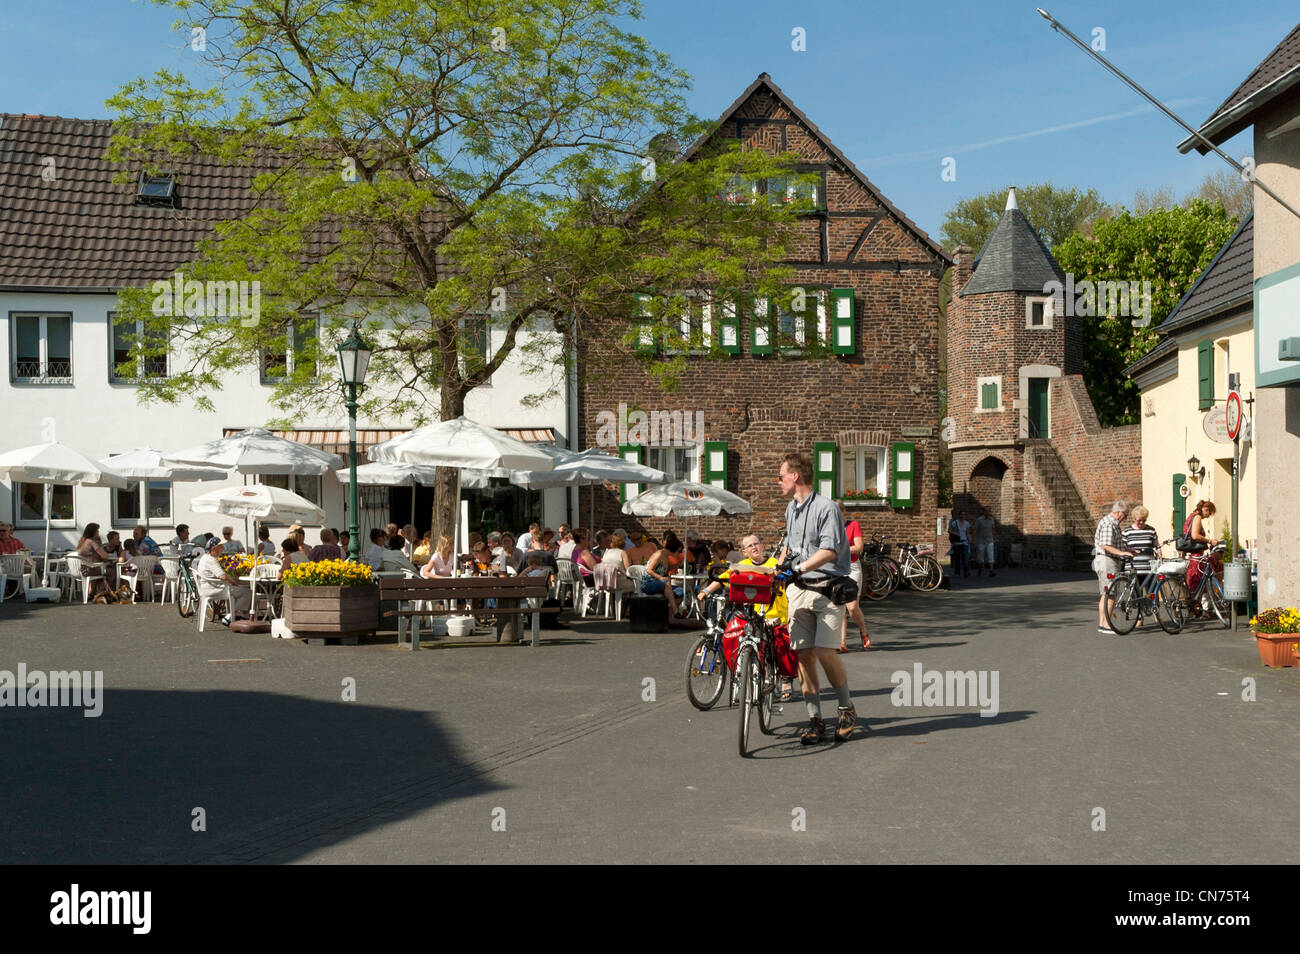 Maler Dormagen Feste Zons Stock Photos & Feste Zons Stock Images - Alamy